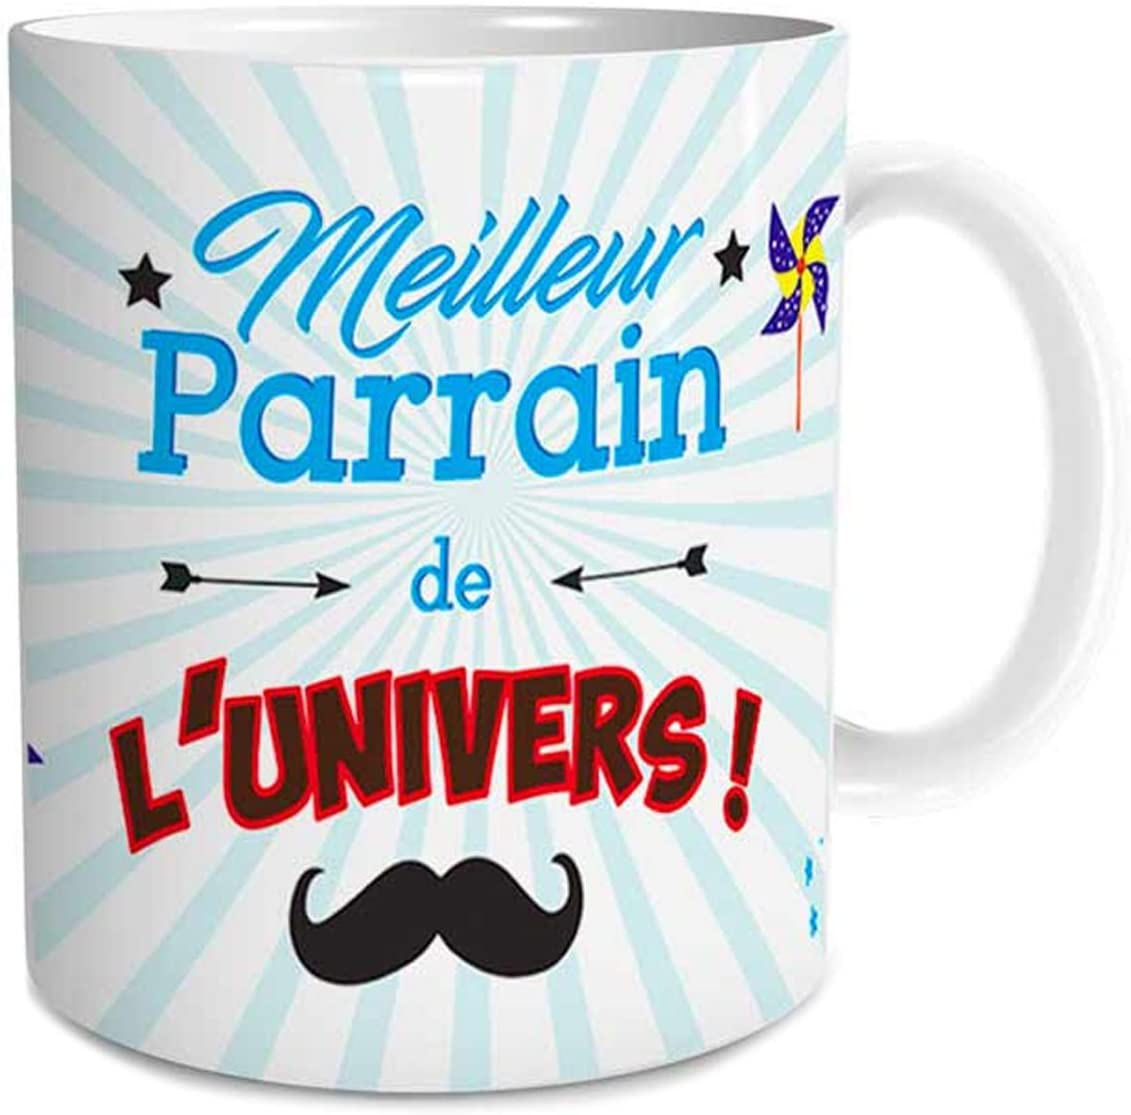 BACOMA CREATIONS MUG Super Parrain